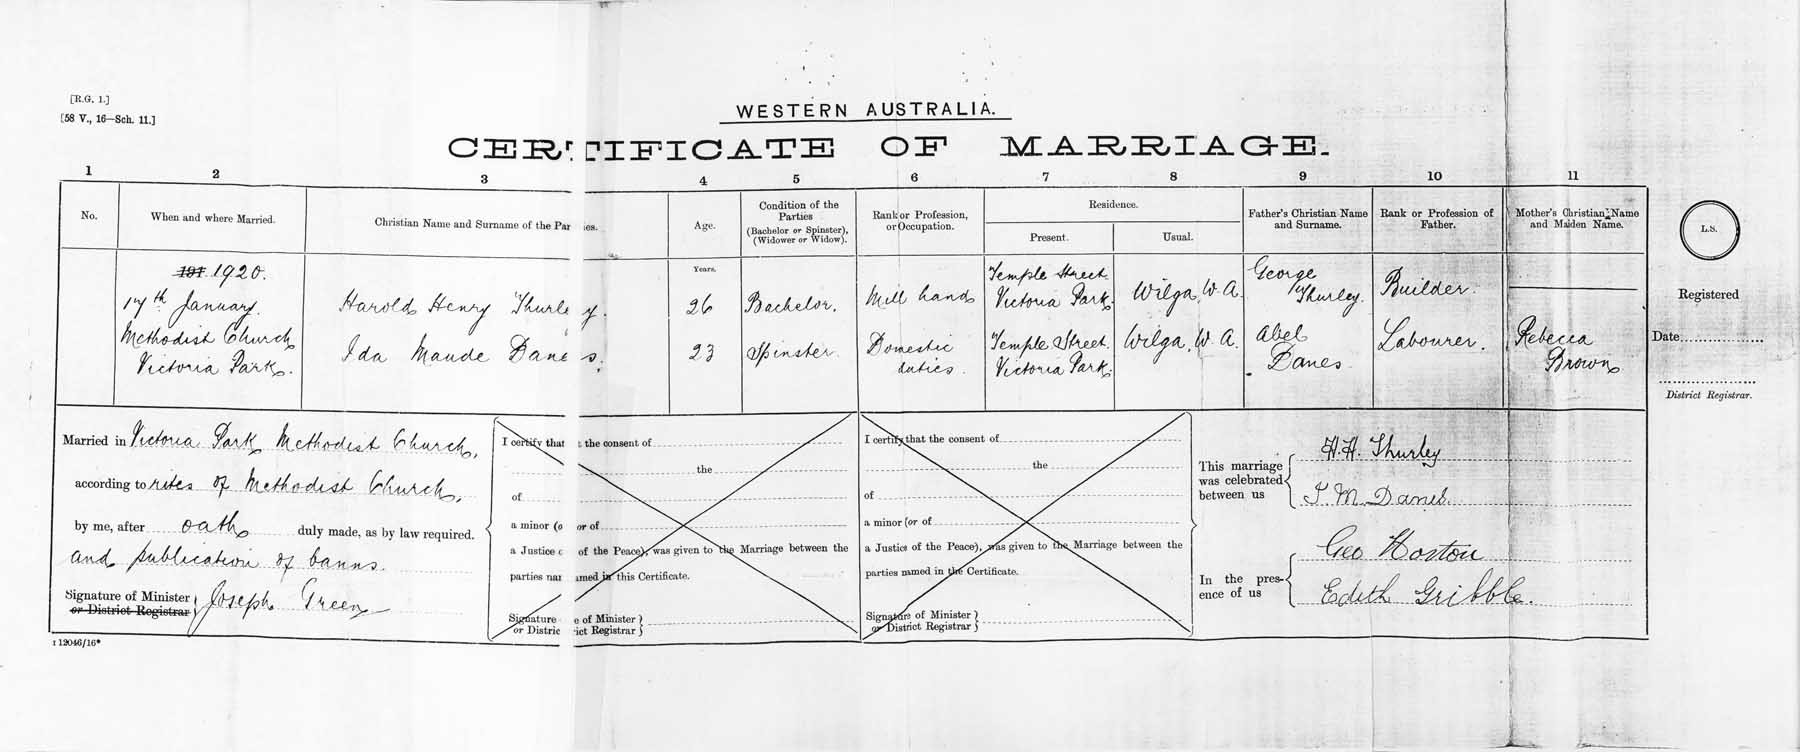 Thurleyyule surname research bmd bmd marriage of harold henry thurley and ida maude danes 17 january 1920 victoria park western australia australia bmd birth certificate aiddatafo Image collections